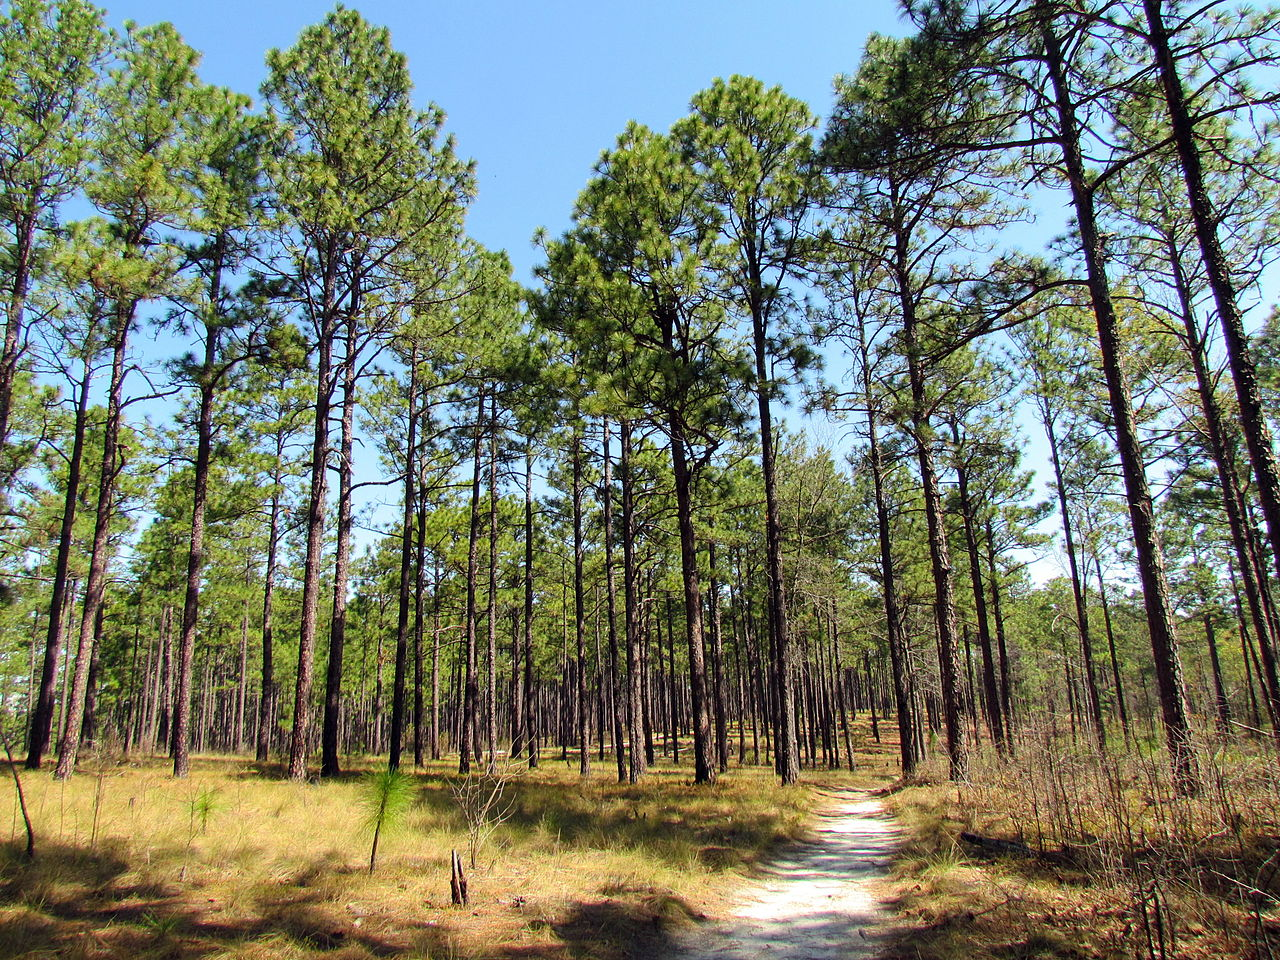 Longleaf pines at Weymouth Woods in North Carolina. Photo by Bobistraveling / Wikimedia.